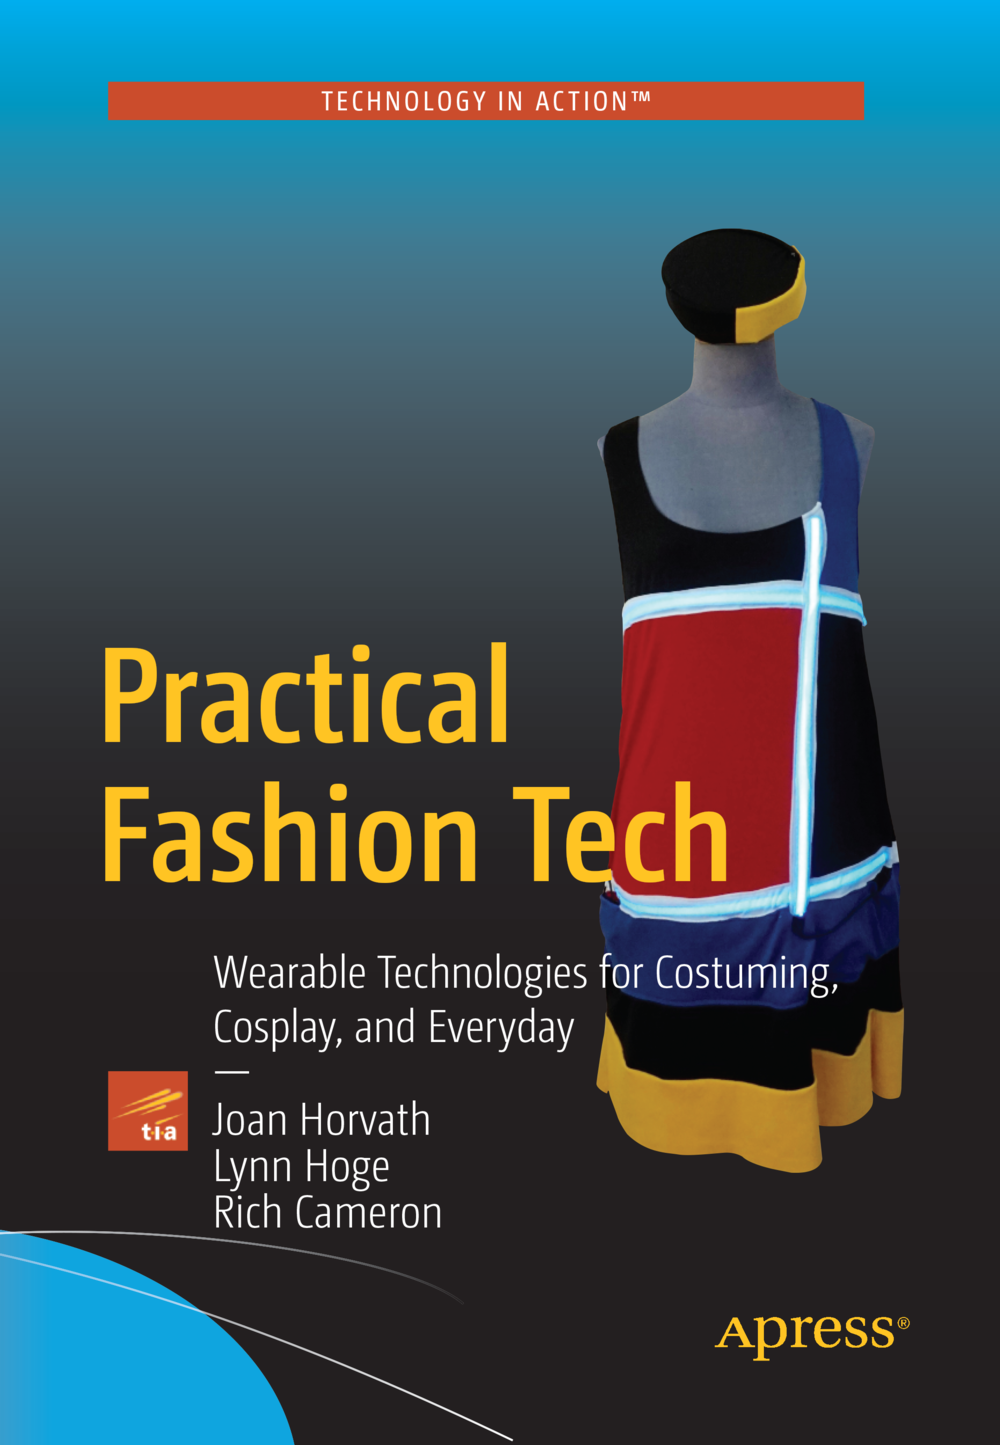 Practical Fashion Tech (Apress, 2016)